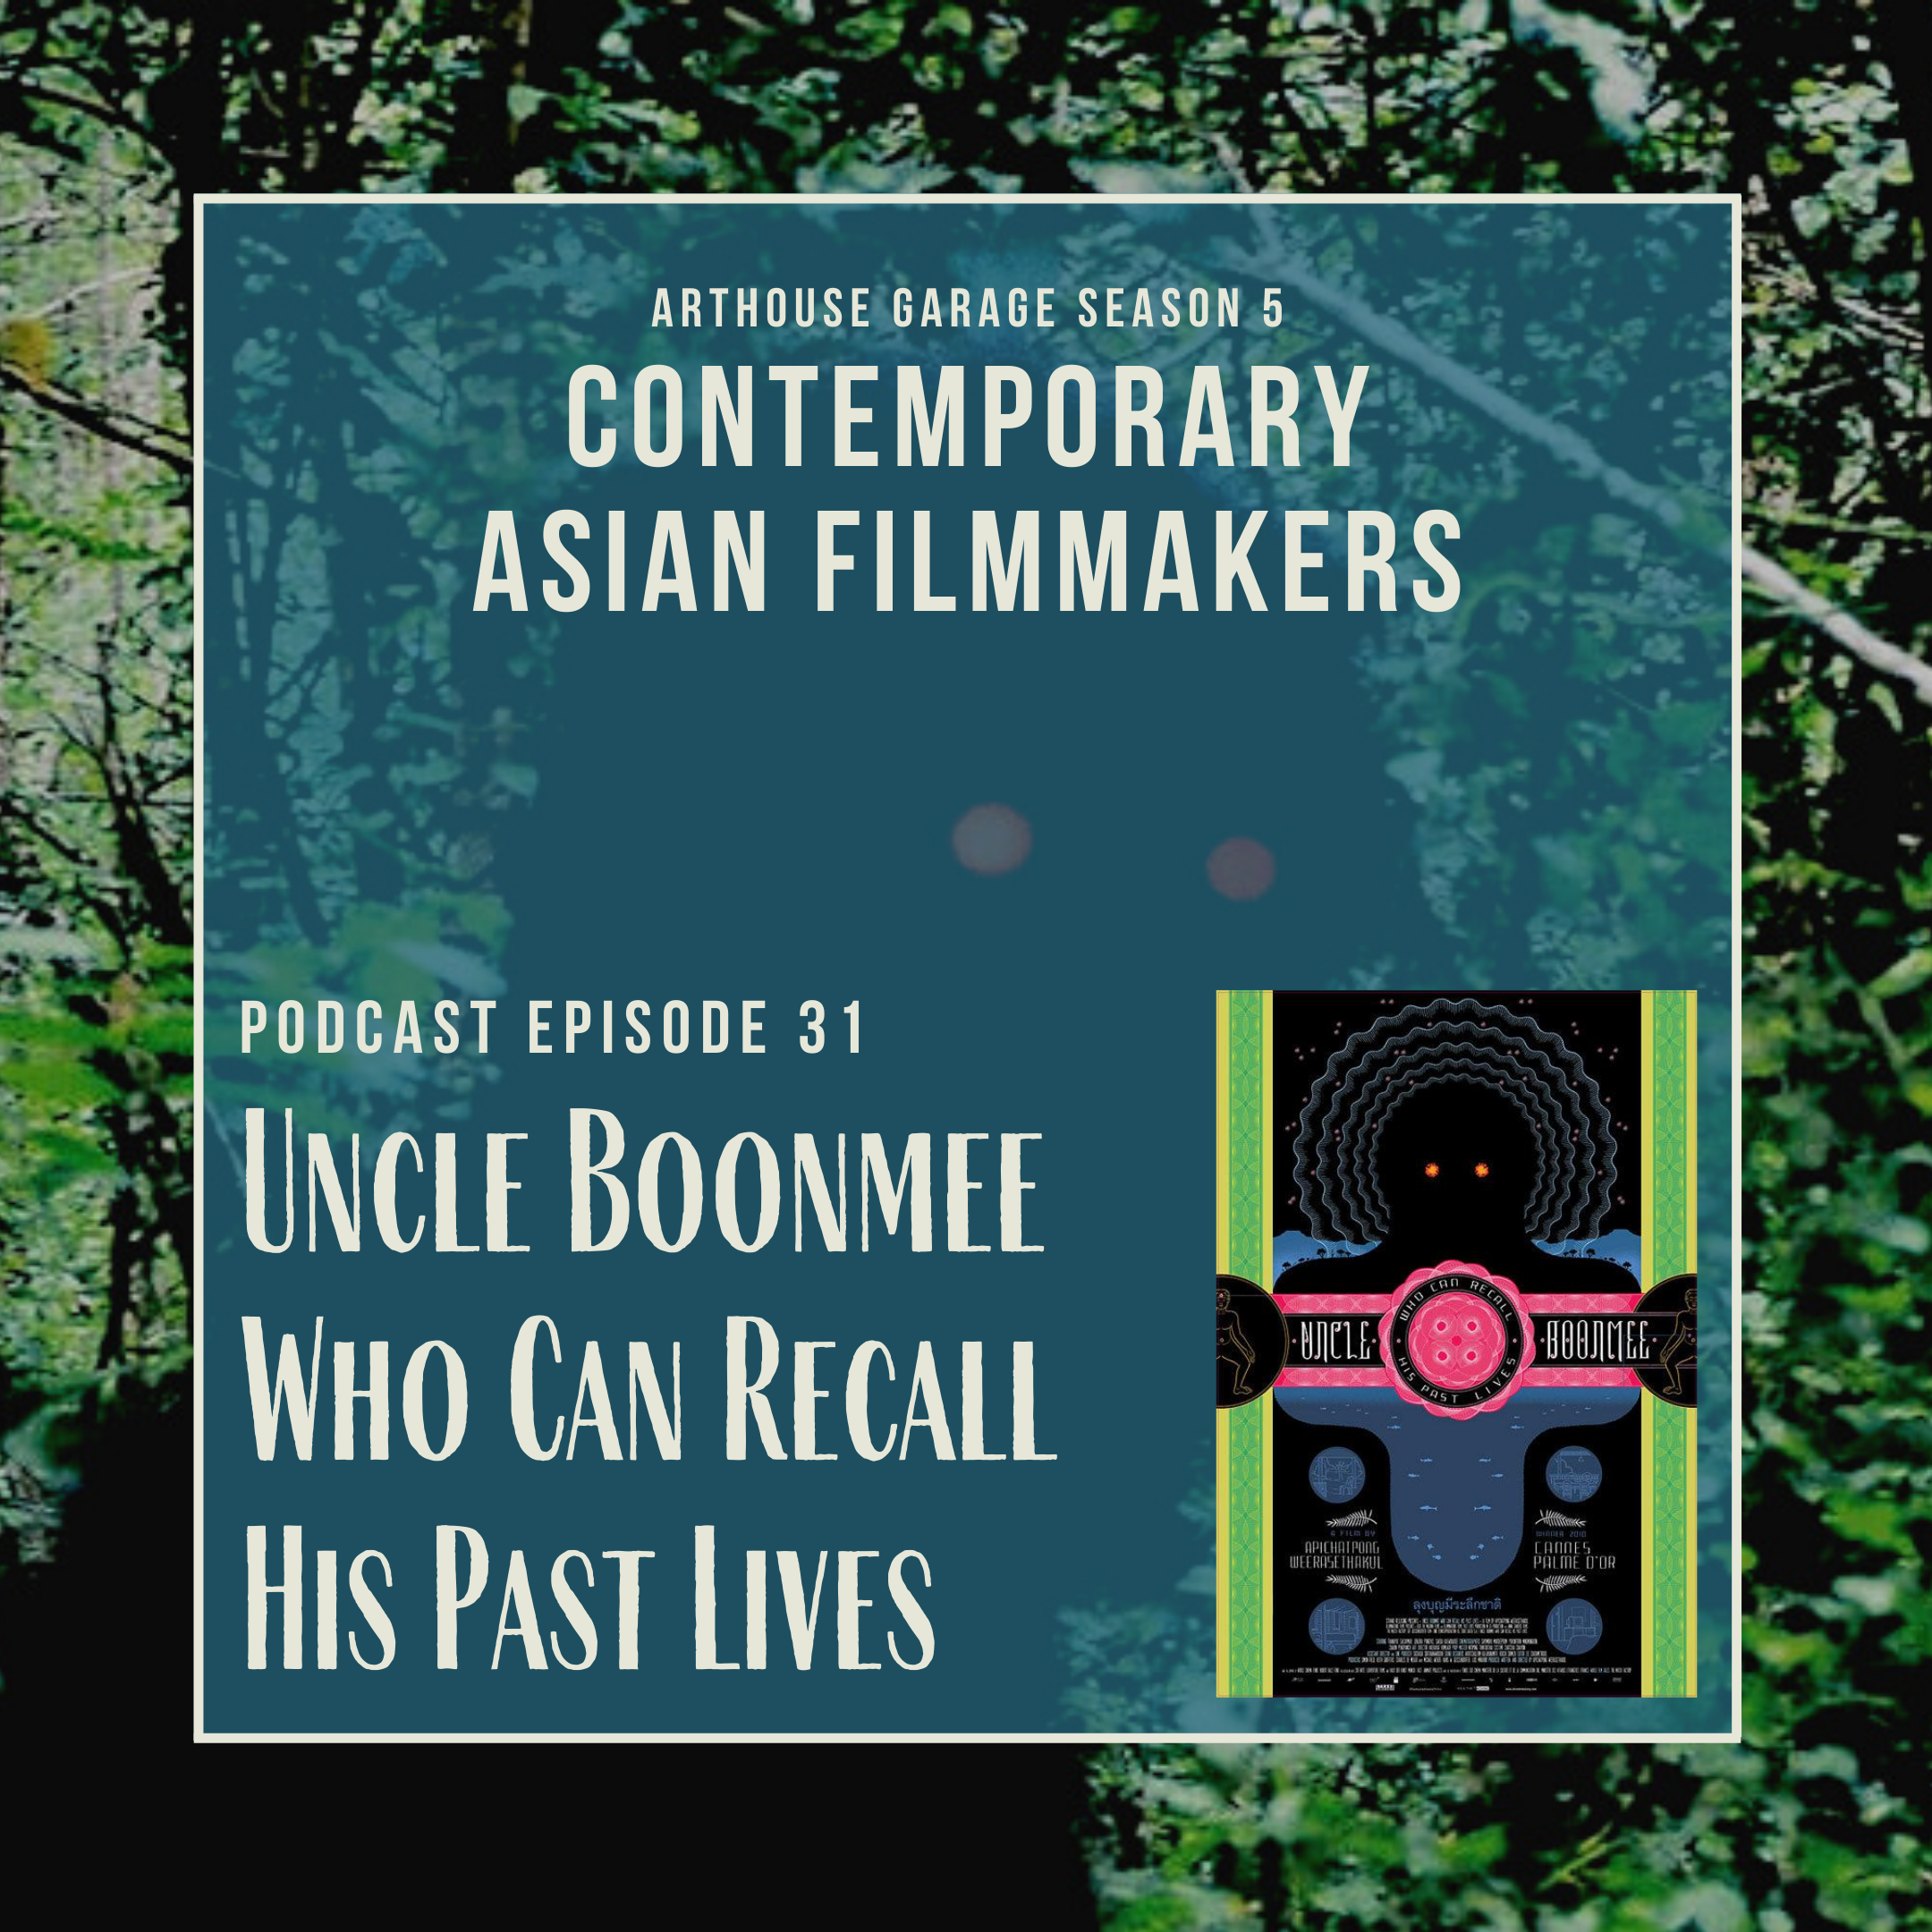 Podcast Transcript for Episode 31: Uncle Boonmee Who Can Recall His Past Lives